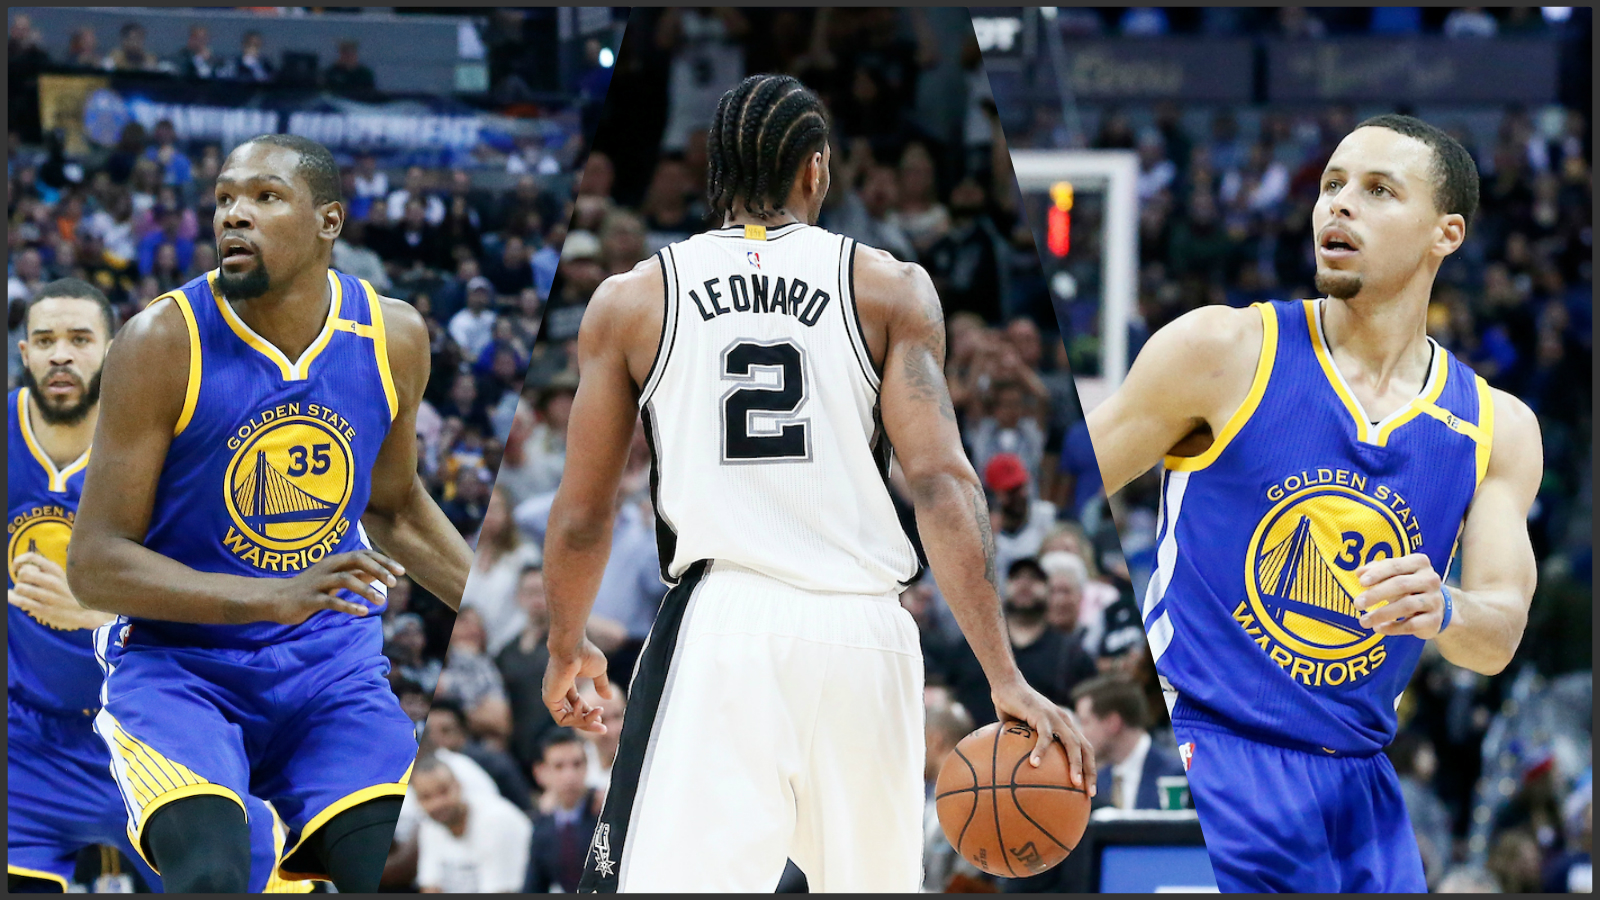 Leonard indispensable, KD et Curry injouables : Que retenir de Warriors-Spurs